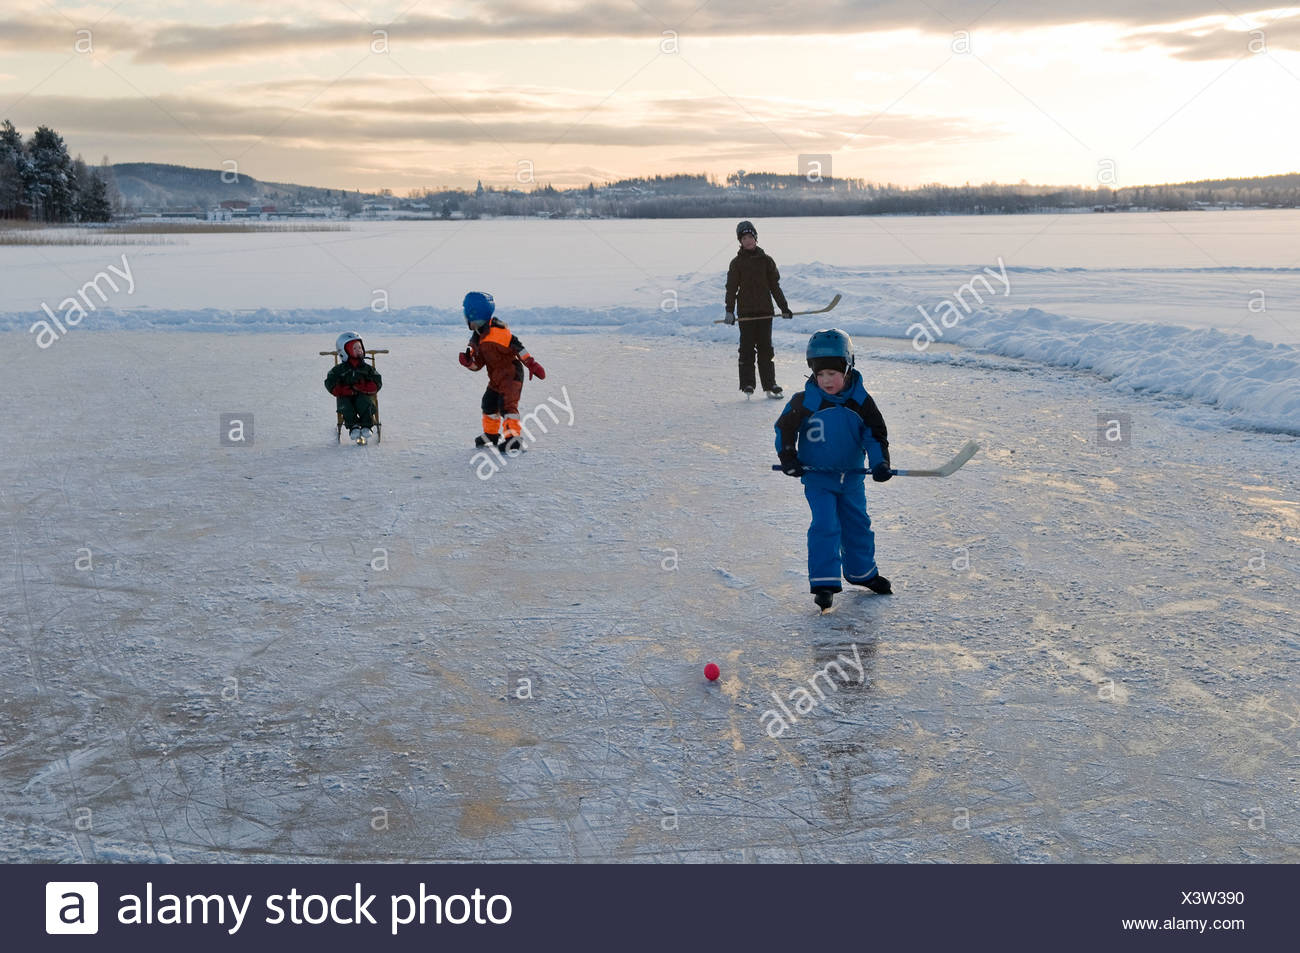 Children playing ice hockey on frozen lake - Stock Image